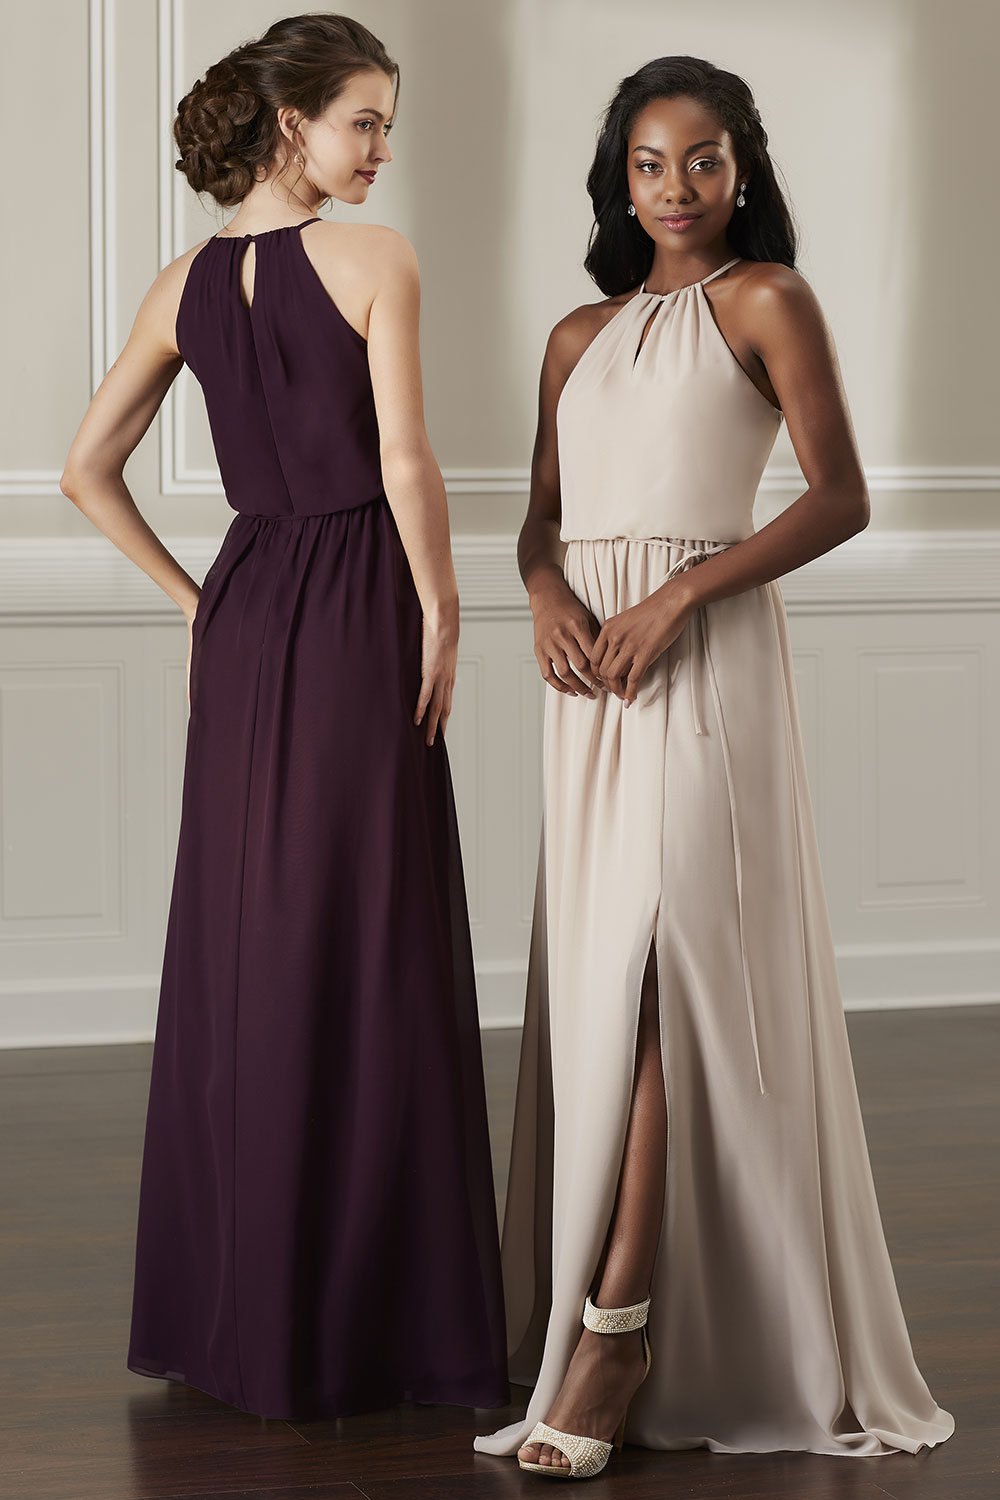 bridesmaid-dresses-jacquelin-bridals-canada-26820